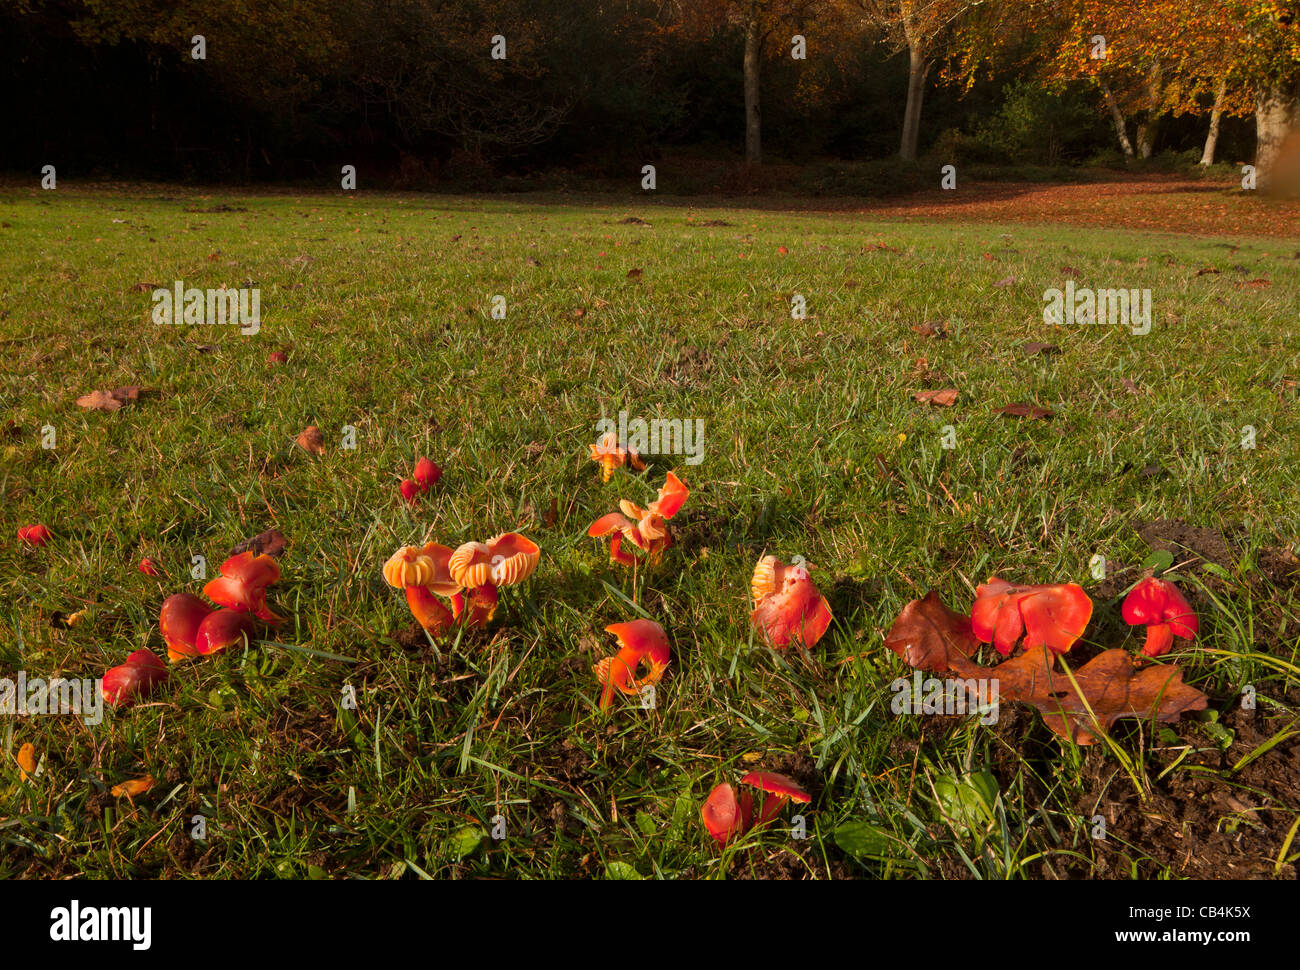 Scarlet waxcaps, Hygrocybe coccinea, in old grazed grassland at Emery Down, New Forest, Hants. - Stock Image